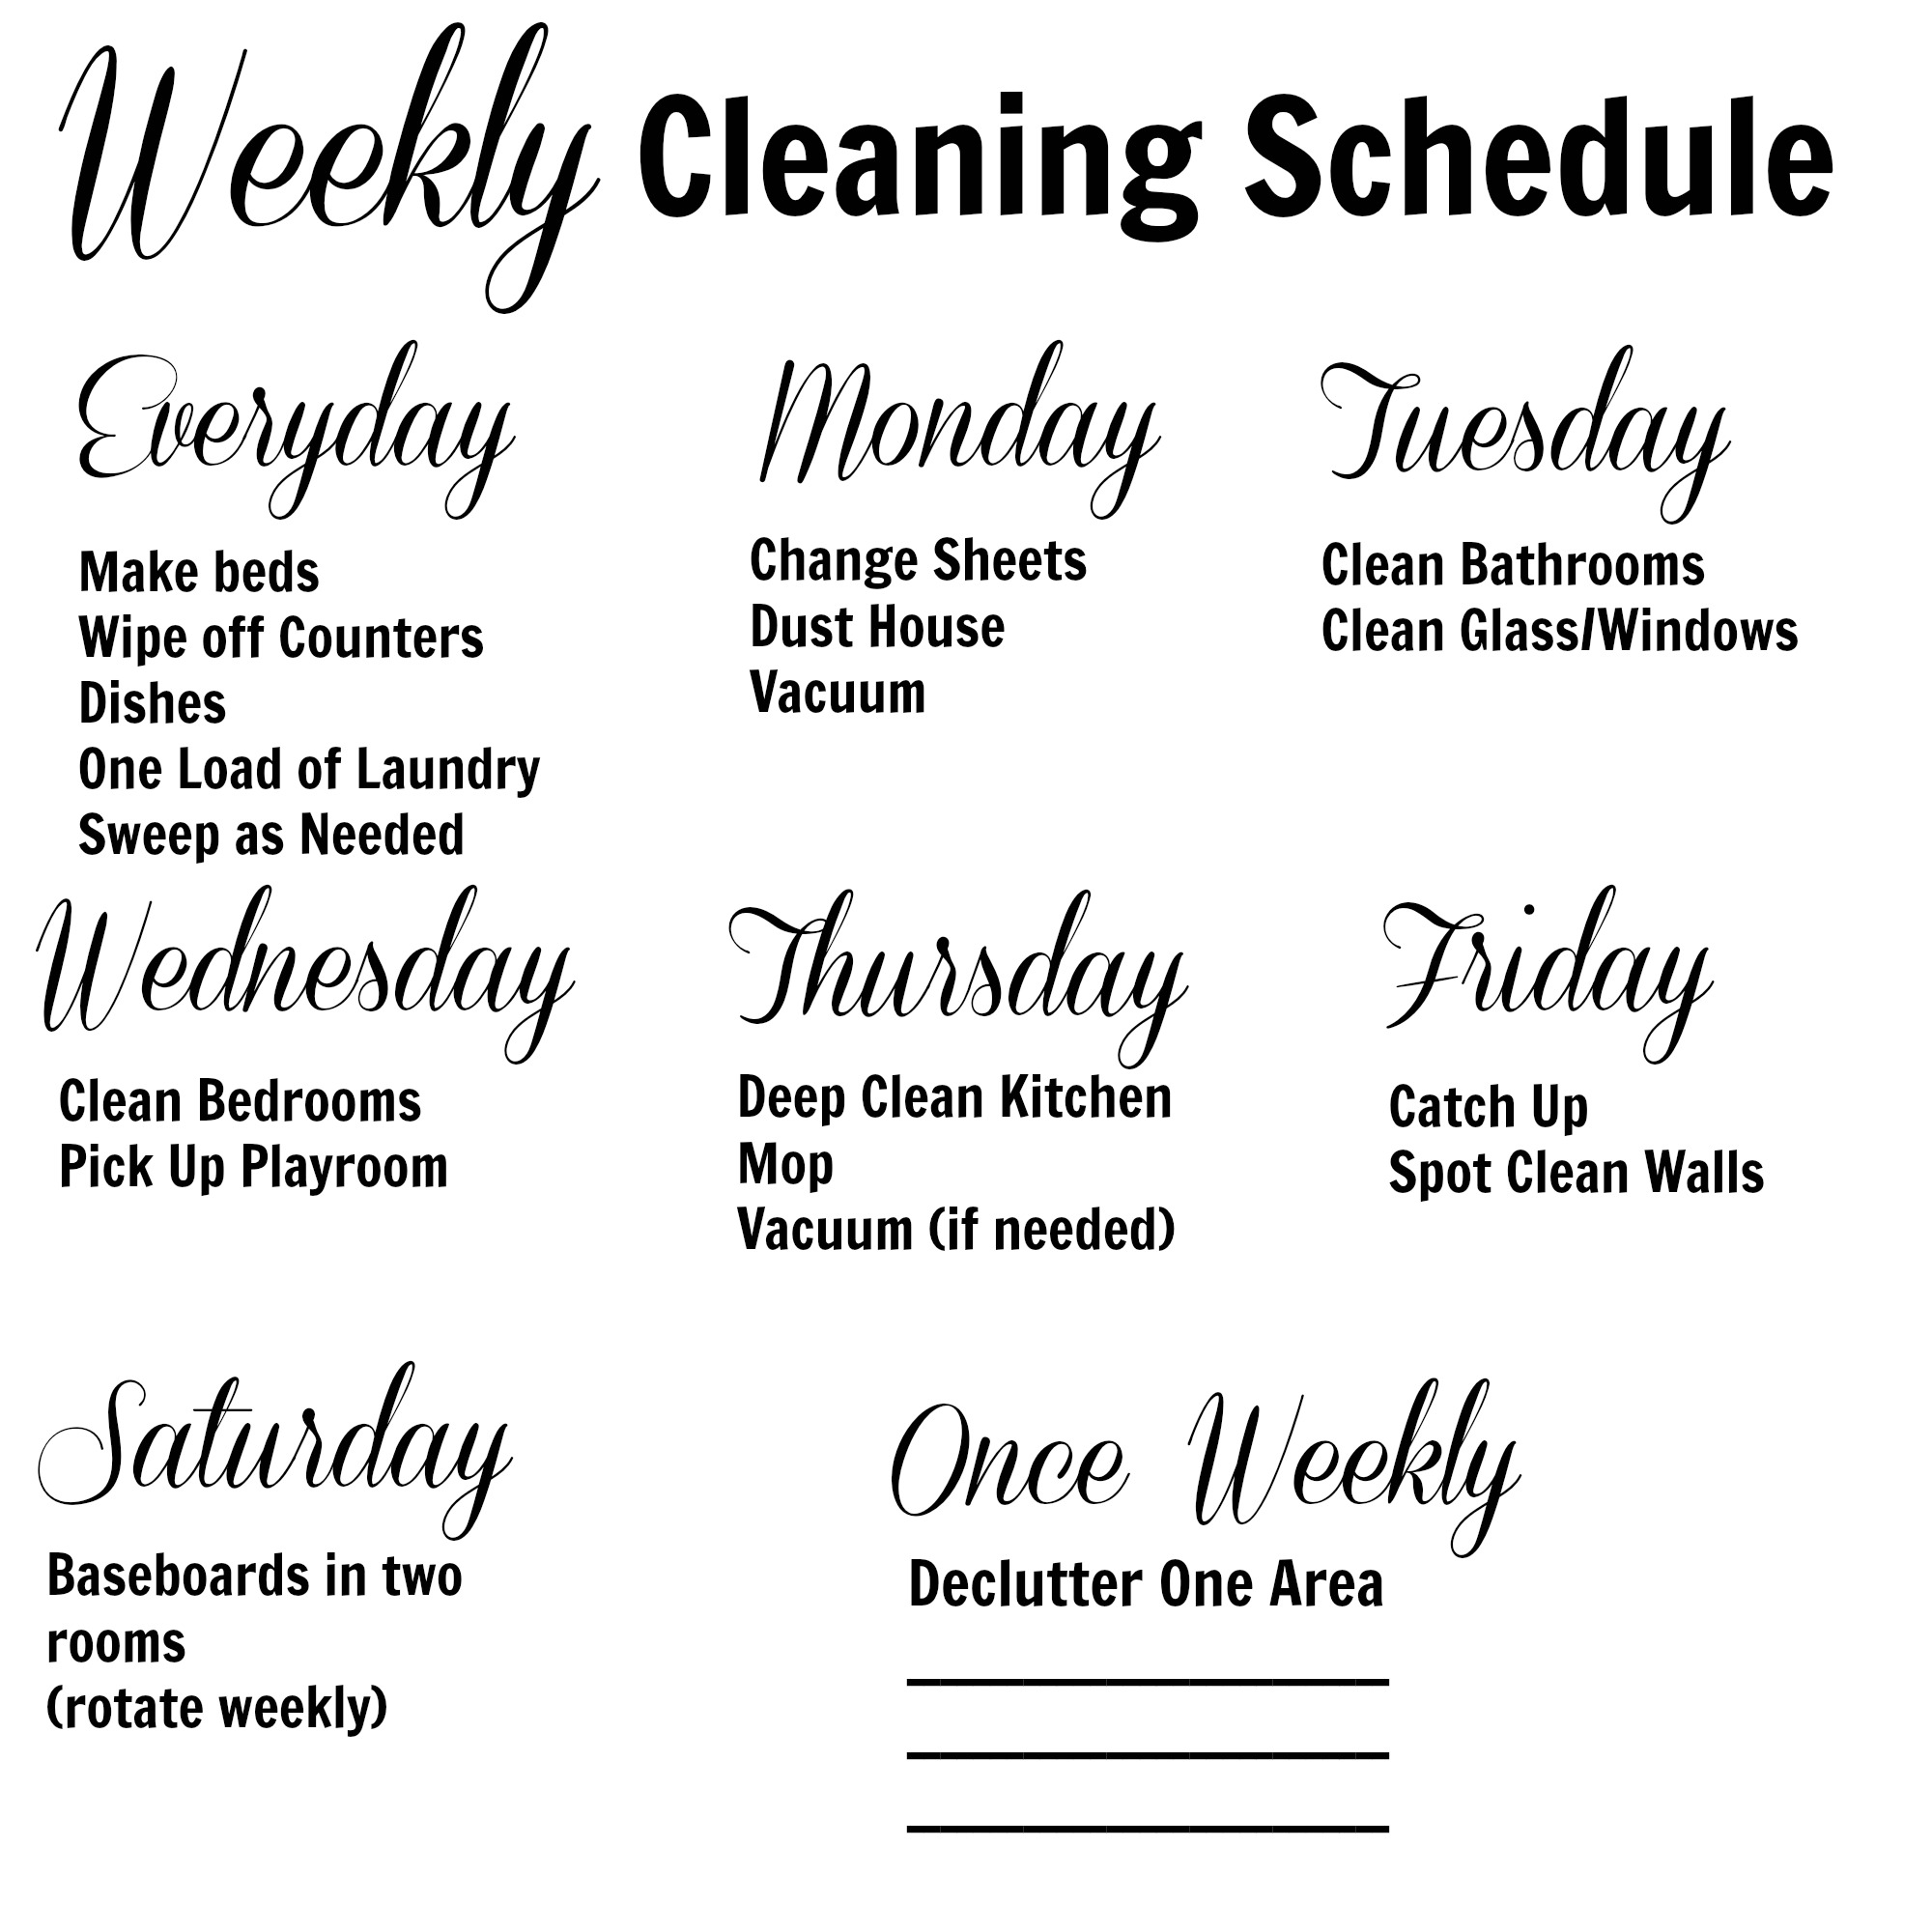 House Cleaning Services: Weekly Home Cleaning Schedule